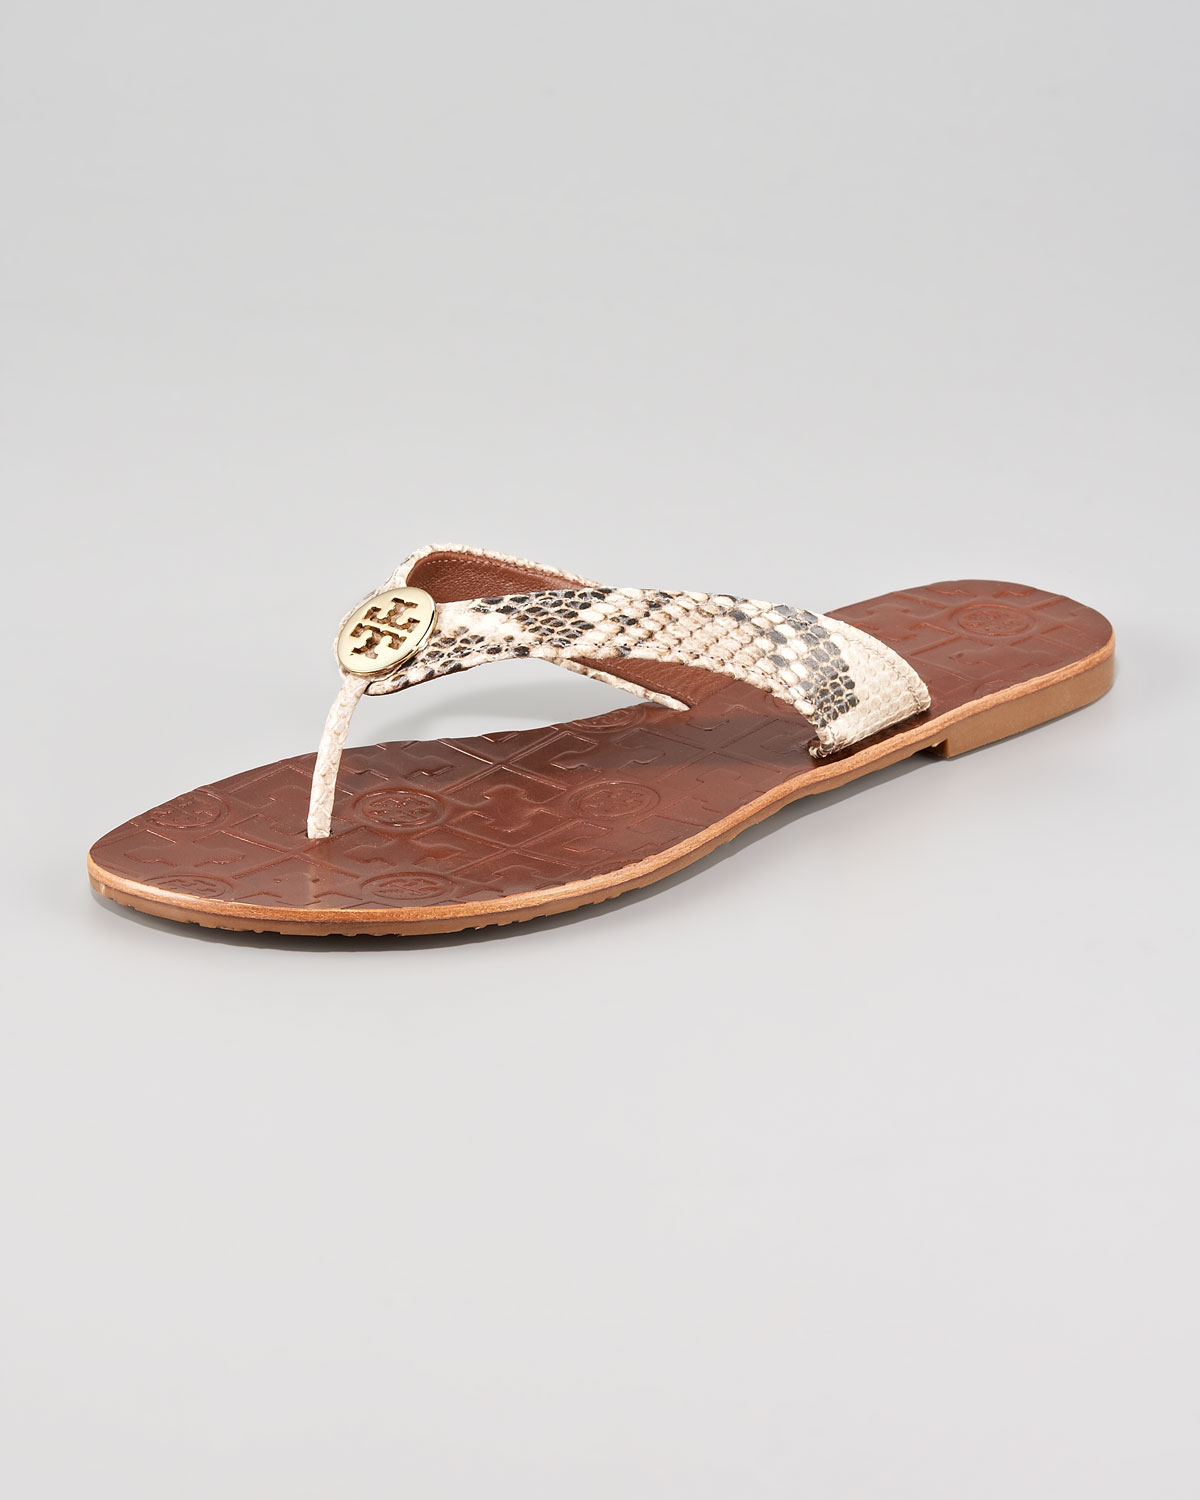 a8c9021996cd Lyst - Tory Burch Thora Snake print Thong Sandal in Metallic